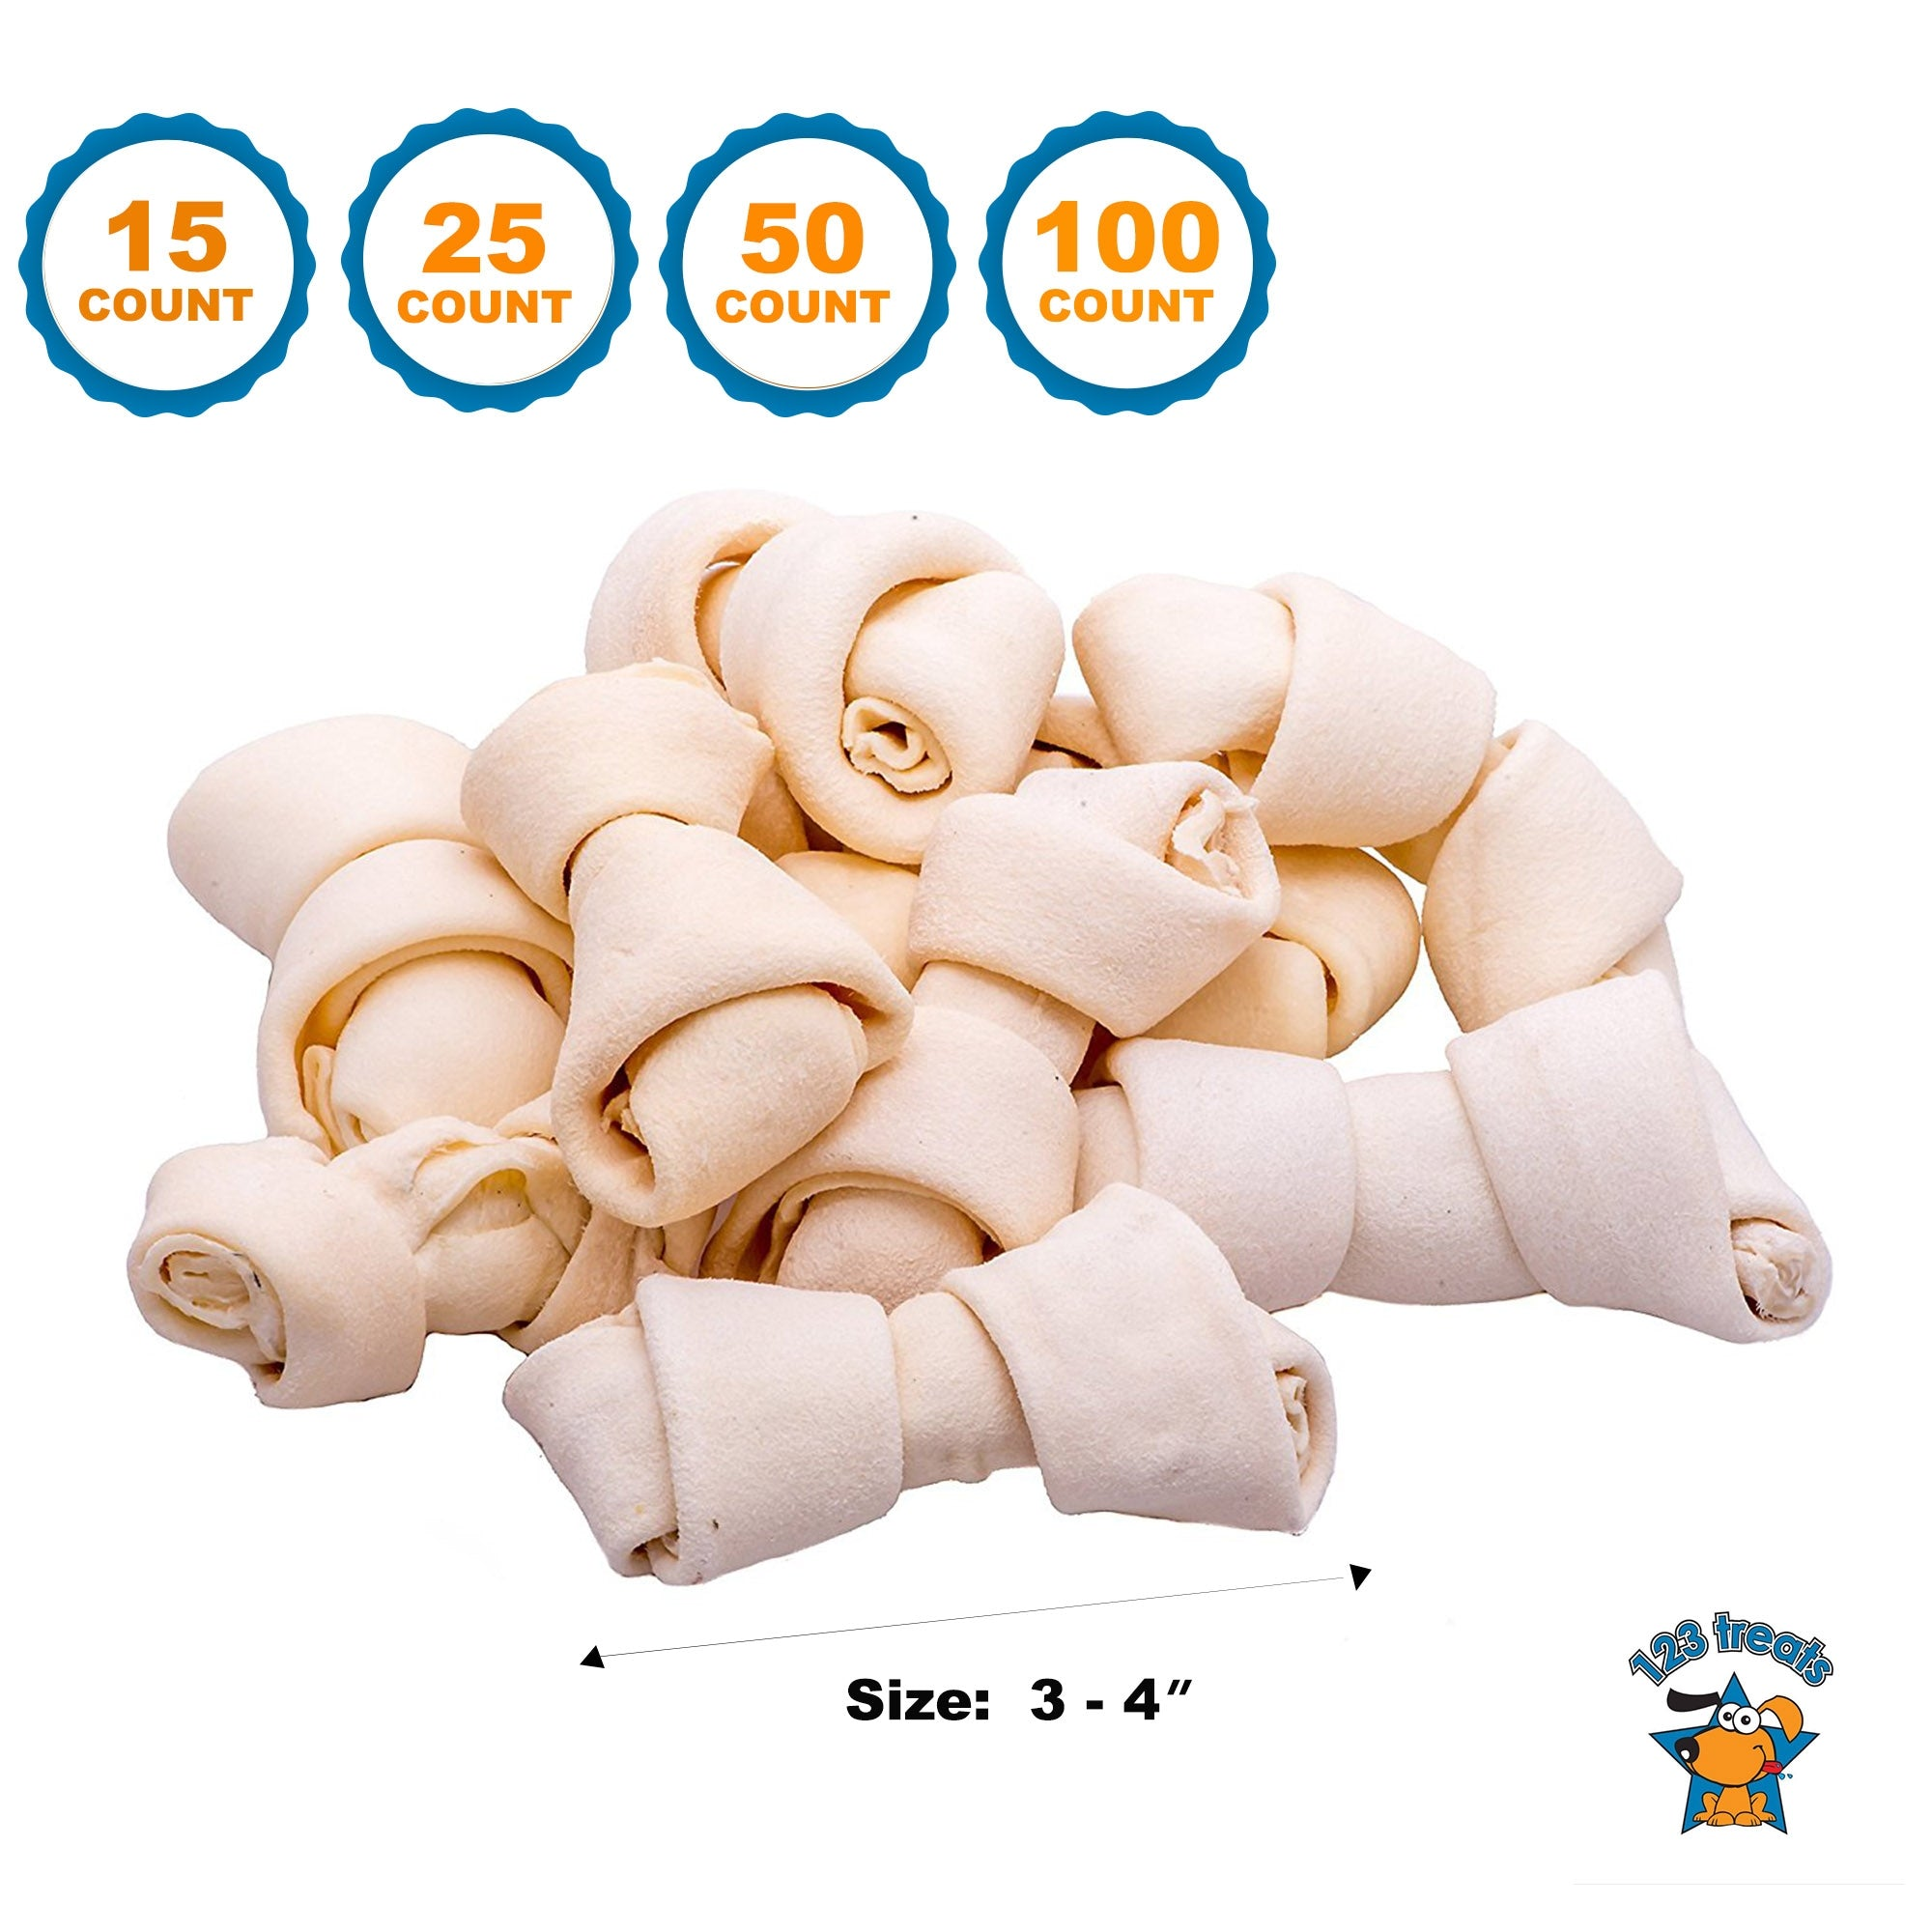 3-4 inches Rawhide Bones Chews | Premium Rawhide Dog Bones 15, 25, 50 or 100 Count